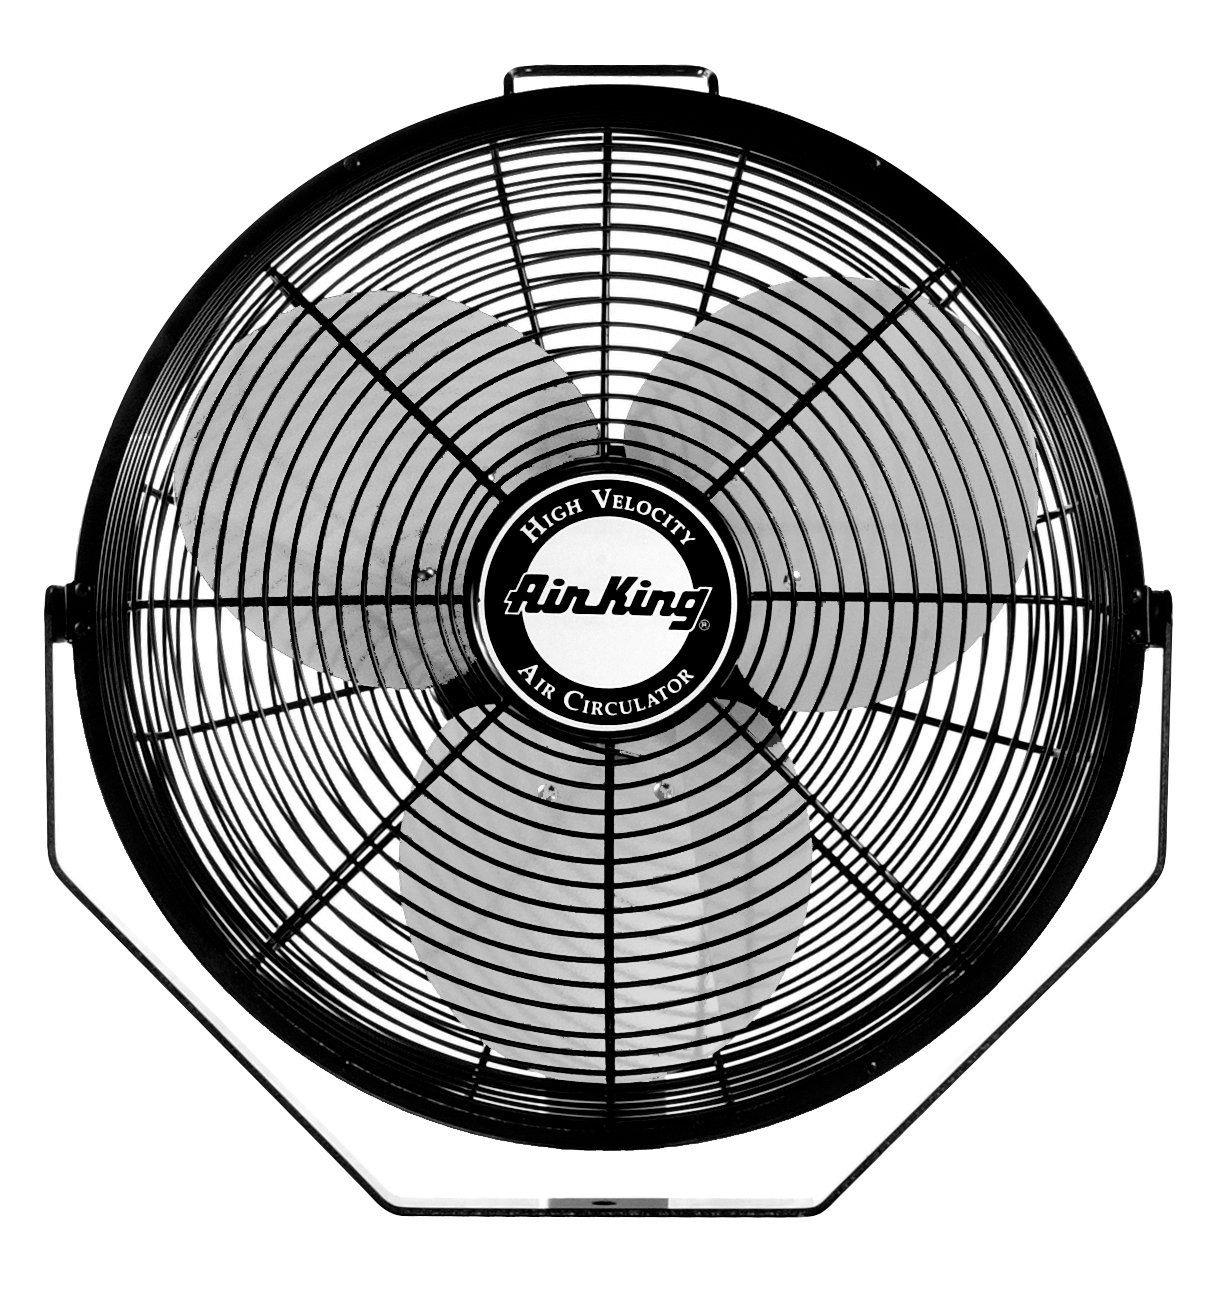 Amazon air king 9312 powder coated steel multi mount wall fan amazon air king 9312 powder coated steel multi mount wall fan black home kitchen aloadofball Gallery